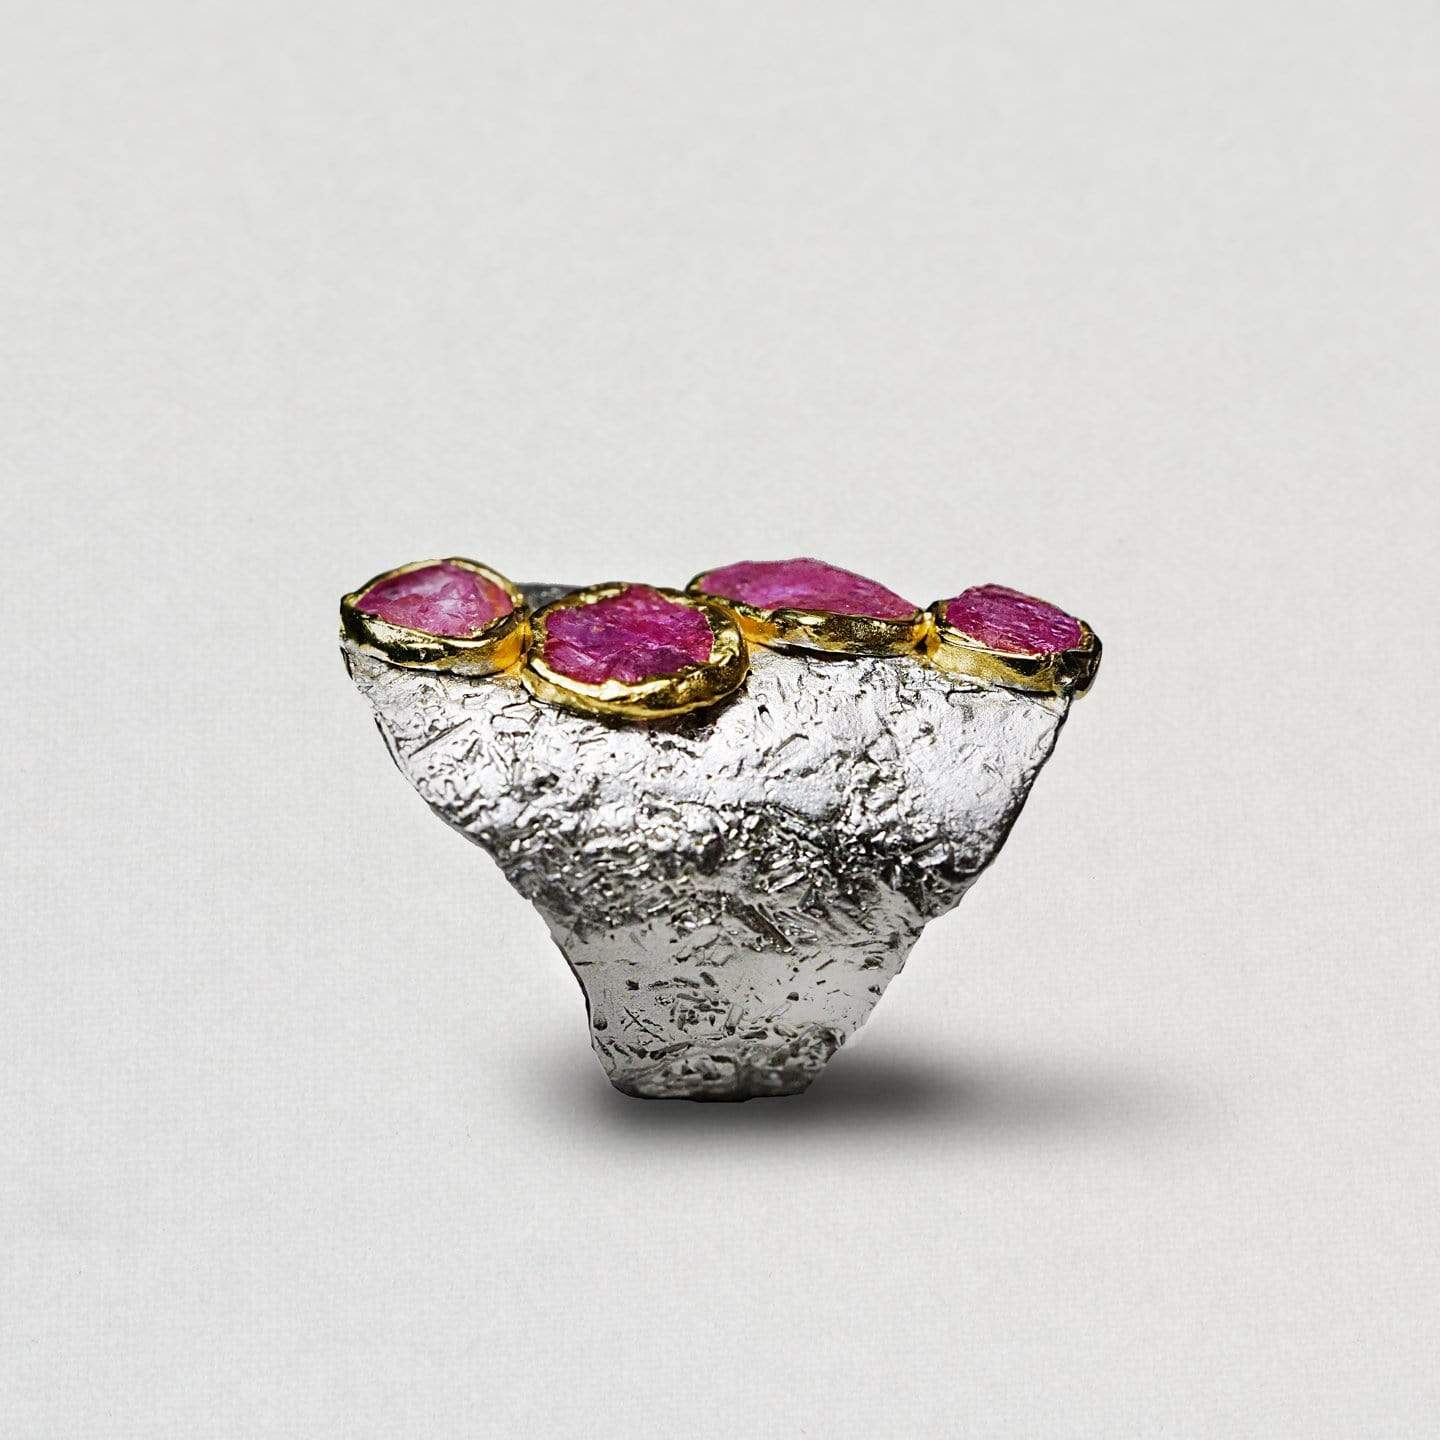 Impresia Ring, Gold, Handmade, Rhodium, Ruby, silver, spo-disabled, StoneColor:PinkRuby, Style:Everyday, Type:StoneCandyScattered Ring